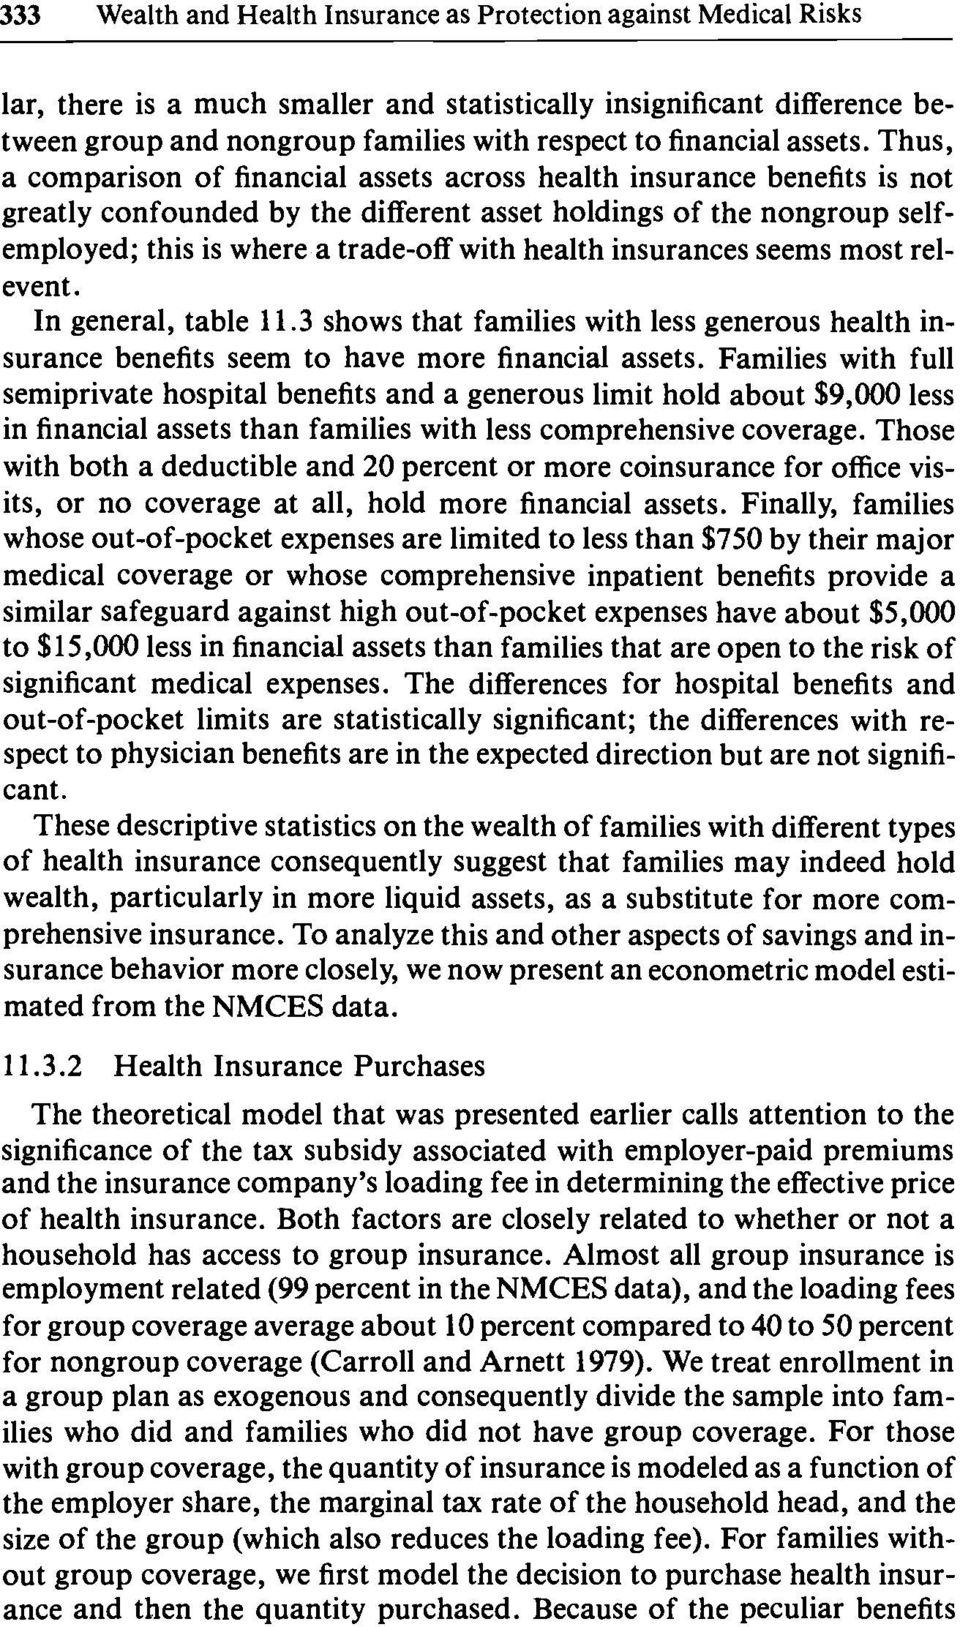 Thus, a comparison of financial assets across health insurance benefits is not greatly confounded by the different asset holdings of the nongroup selfemployed; this is where a tradeoff with health